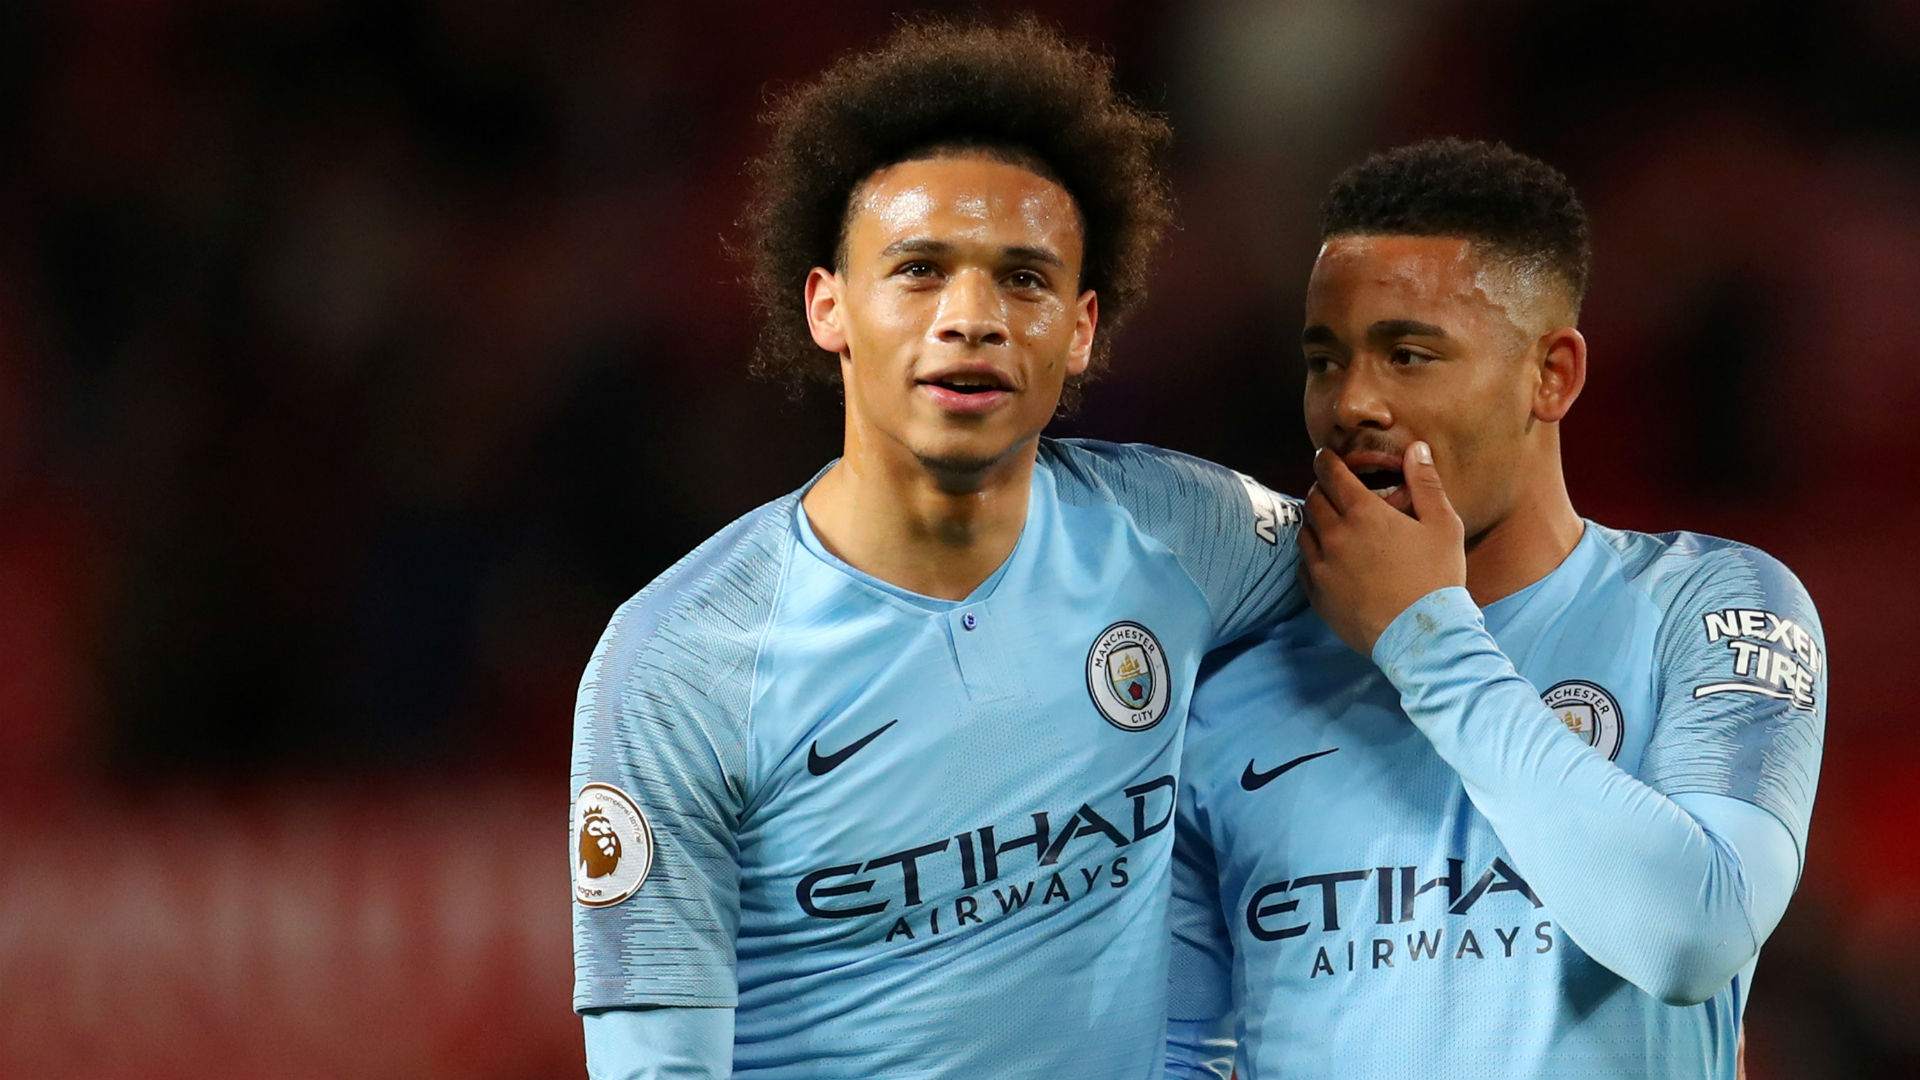 Manchester City have responded to Bayern Munich's bid for Leroy Sane